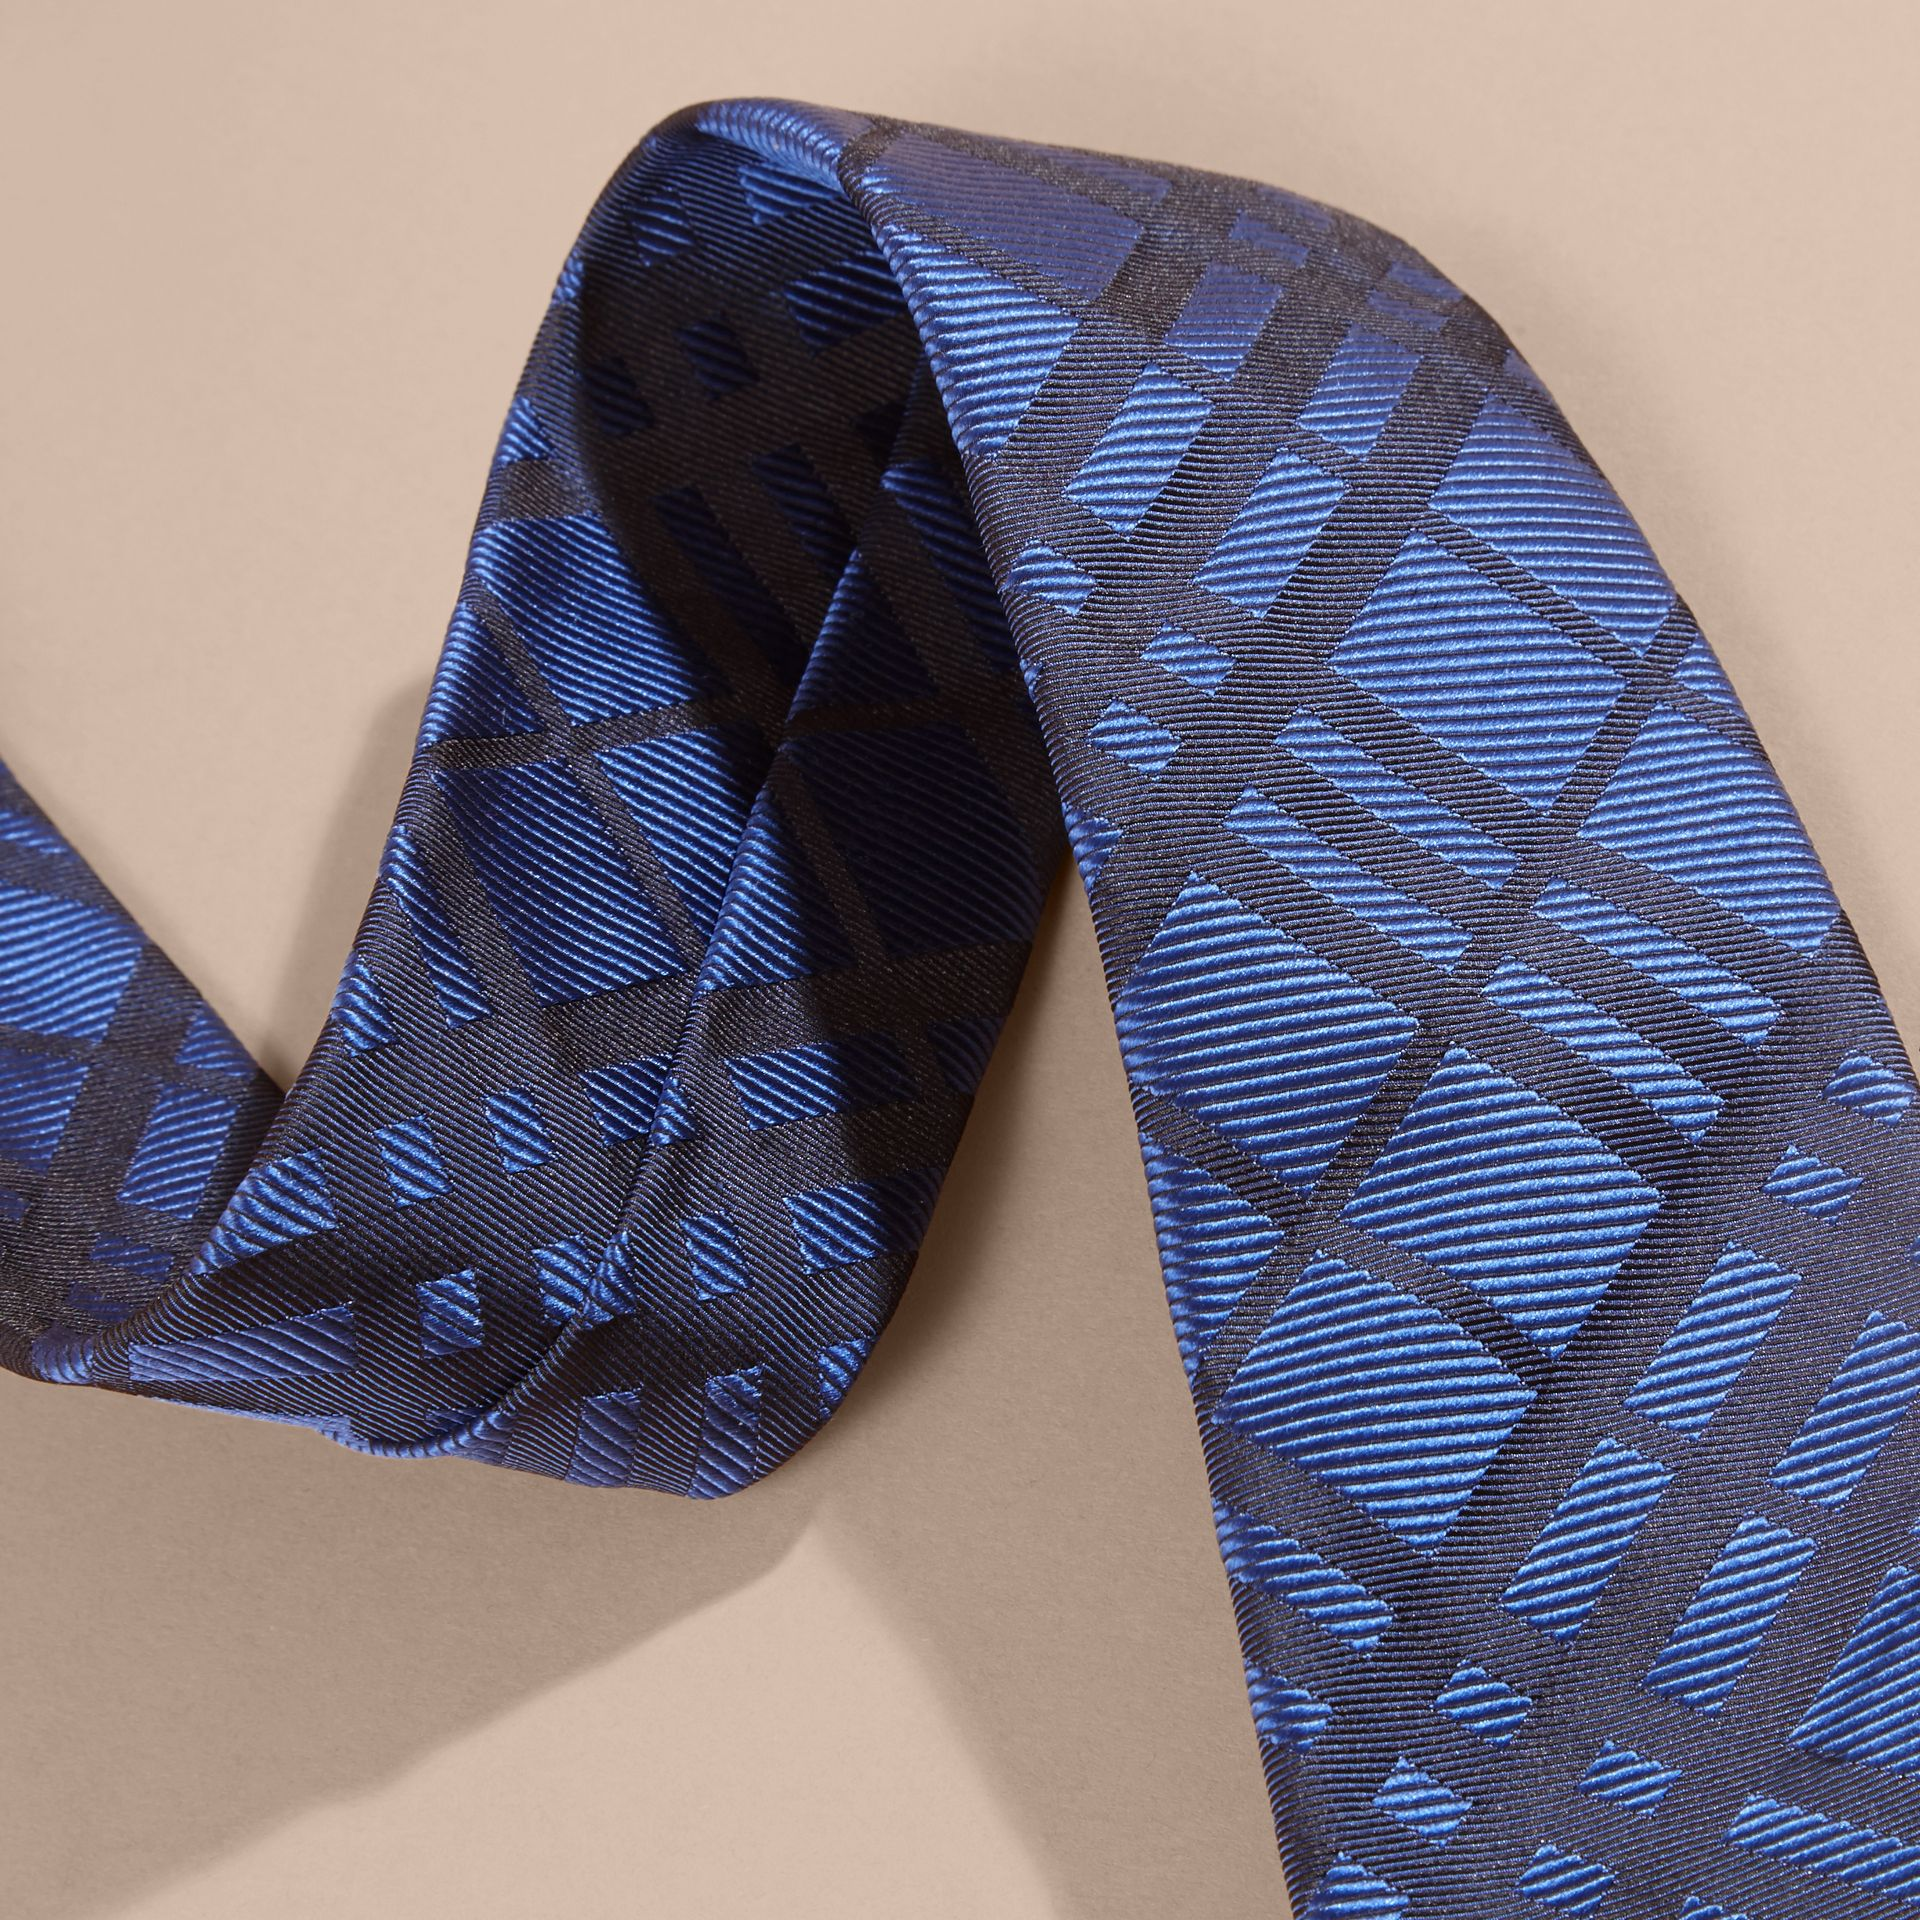 Brilliant blue Modern Cut Check Jacquard Silk TIe Brilliant Blue - gallery image 2